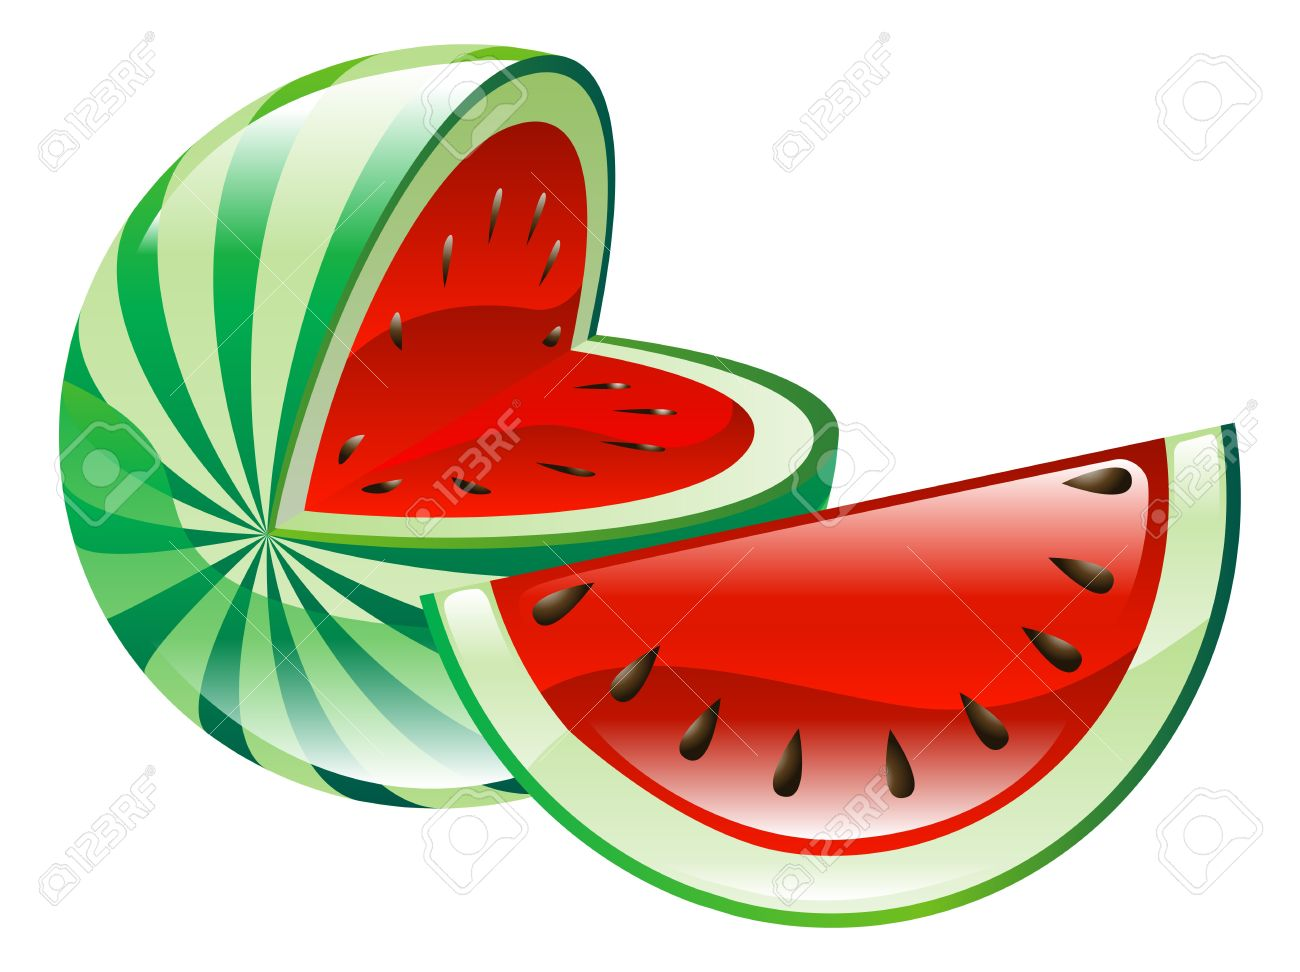 Clipart Watermelon Stock Photos Images. Royalty Free Clipart.